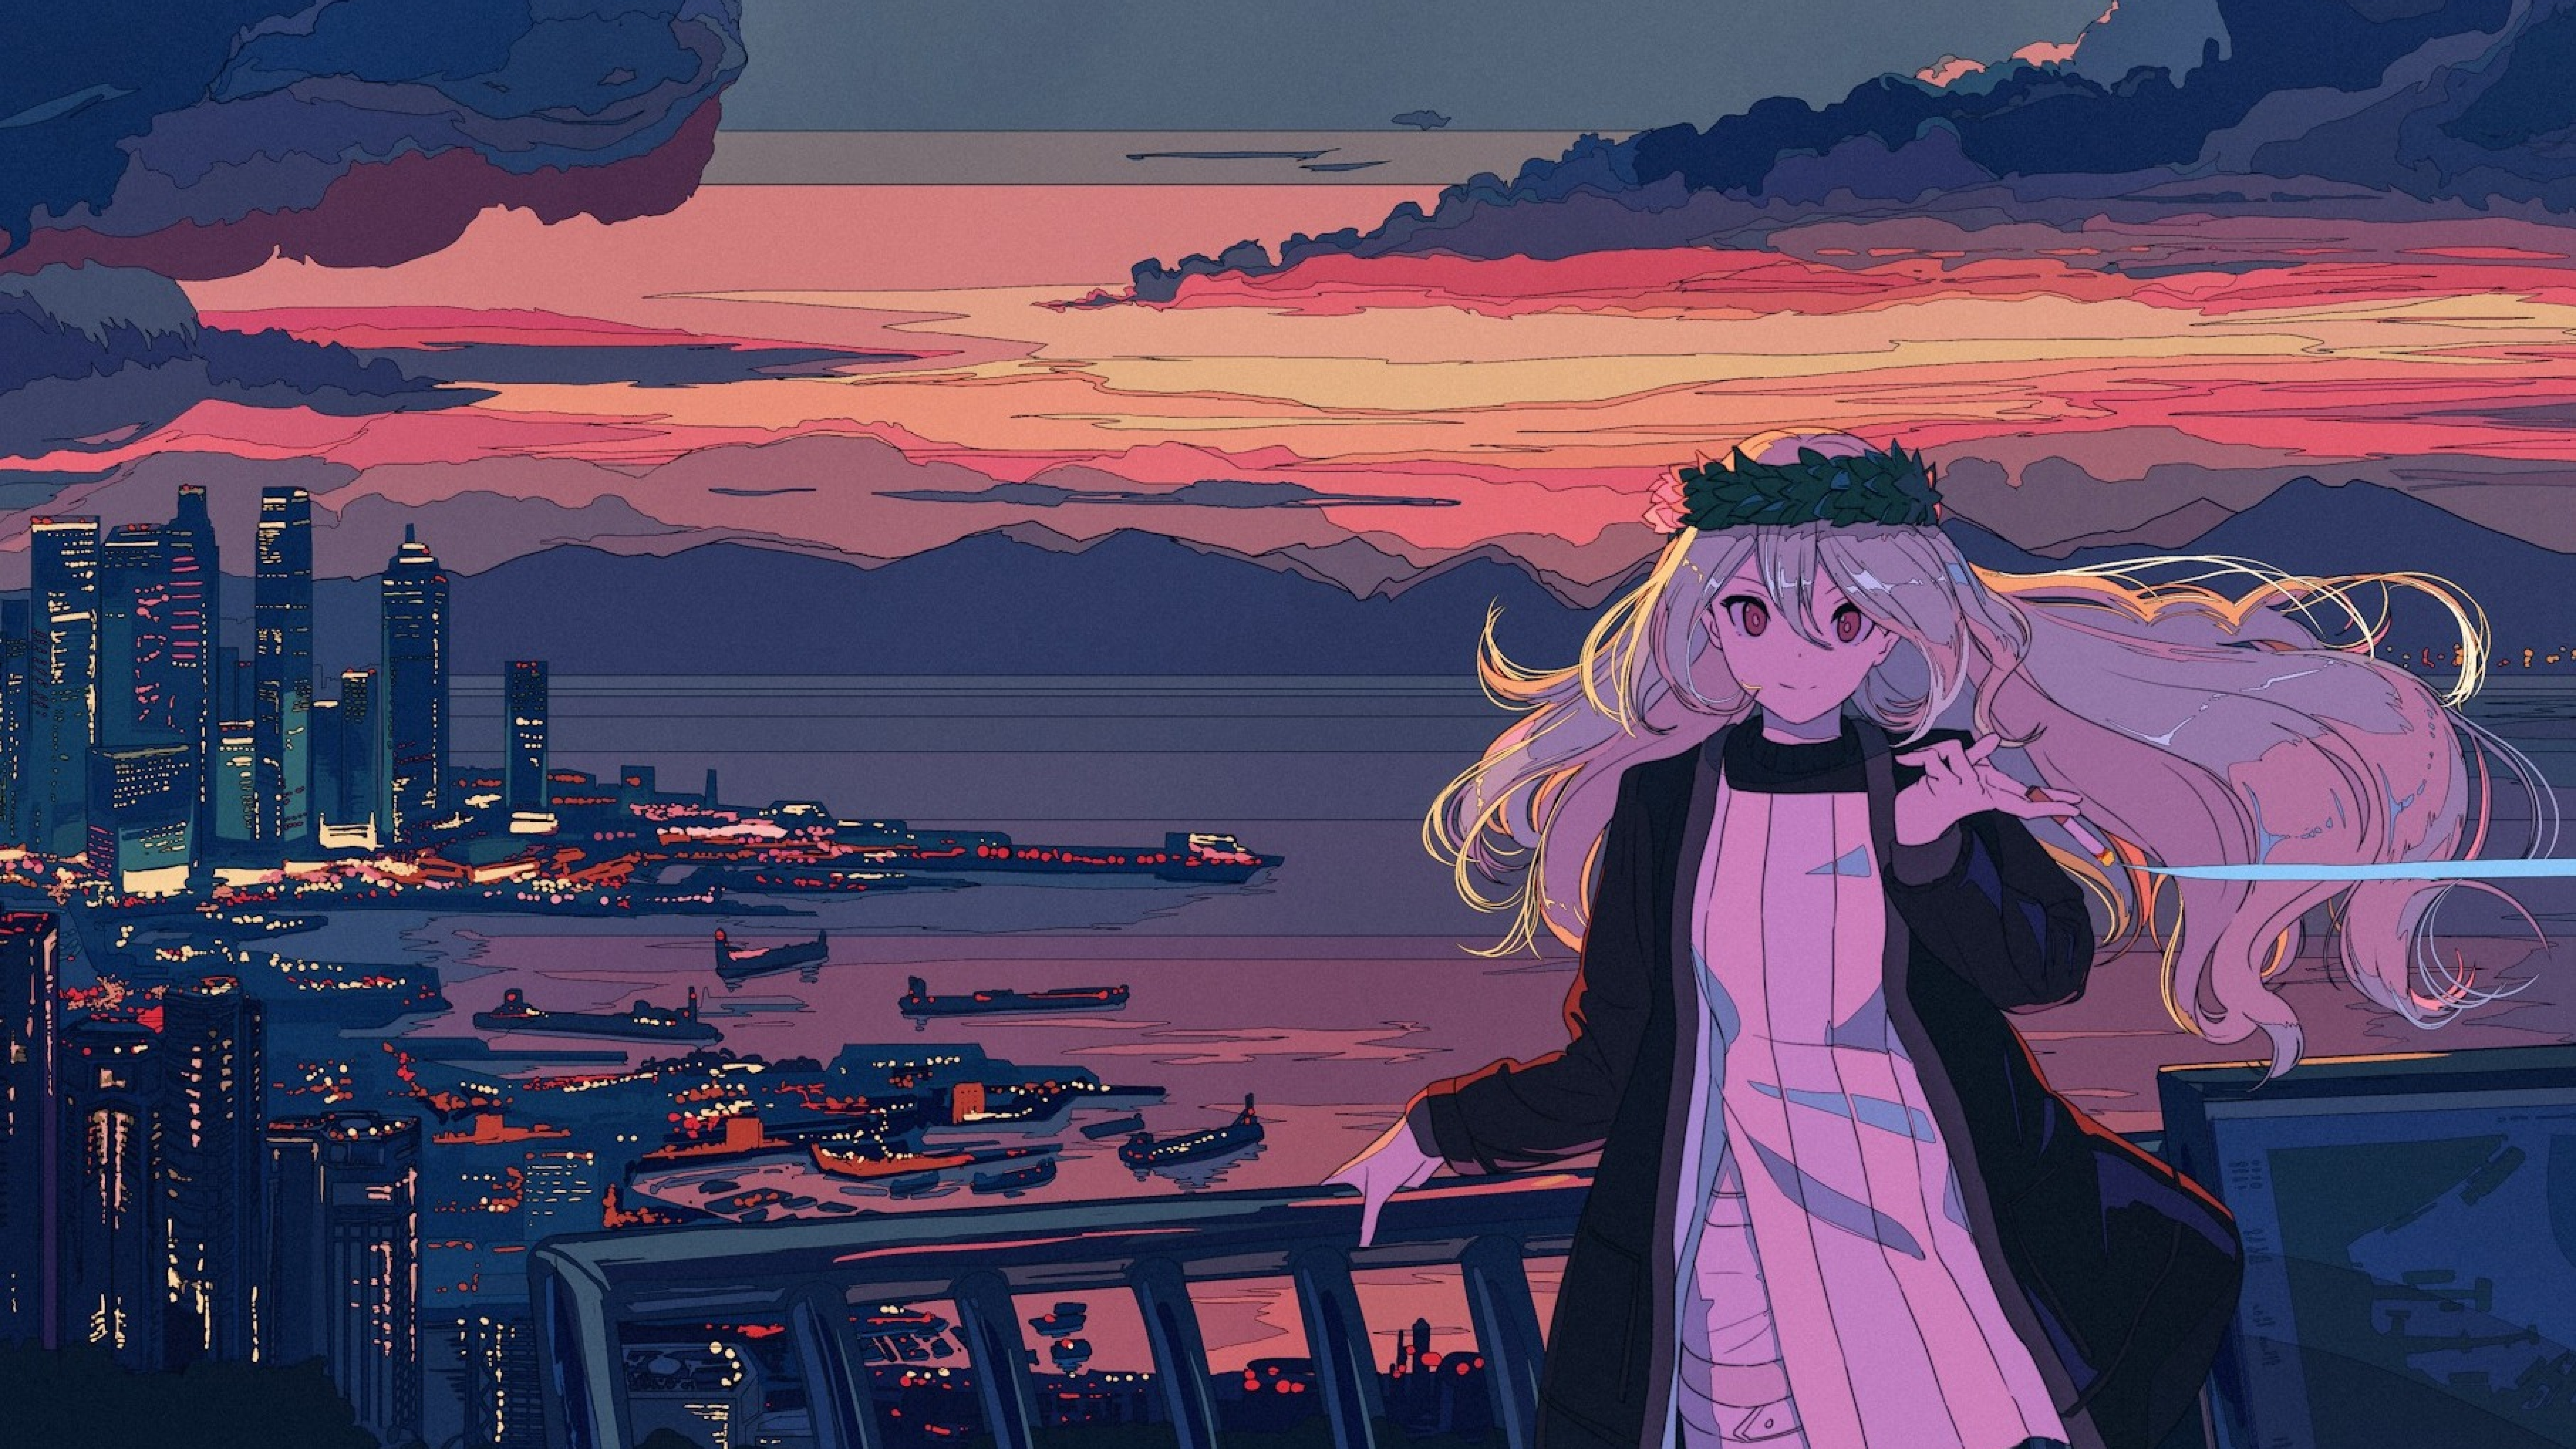 Anime Girl In Balcony Cityscape Sea And Sunset Full Hd